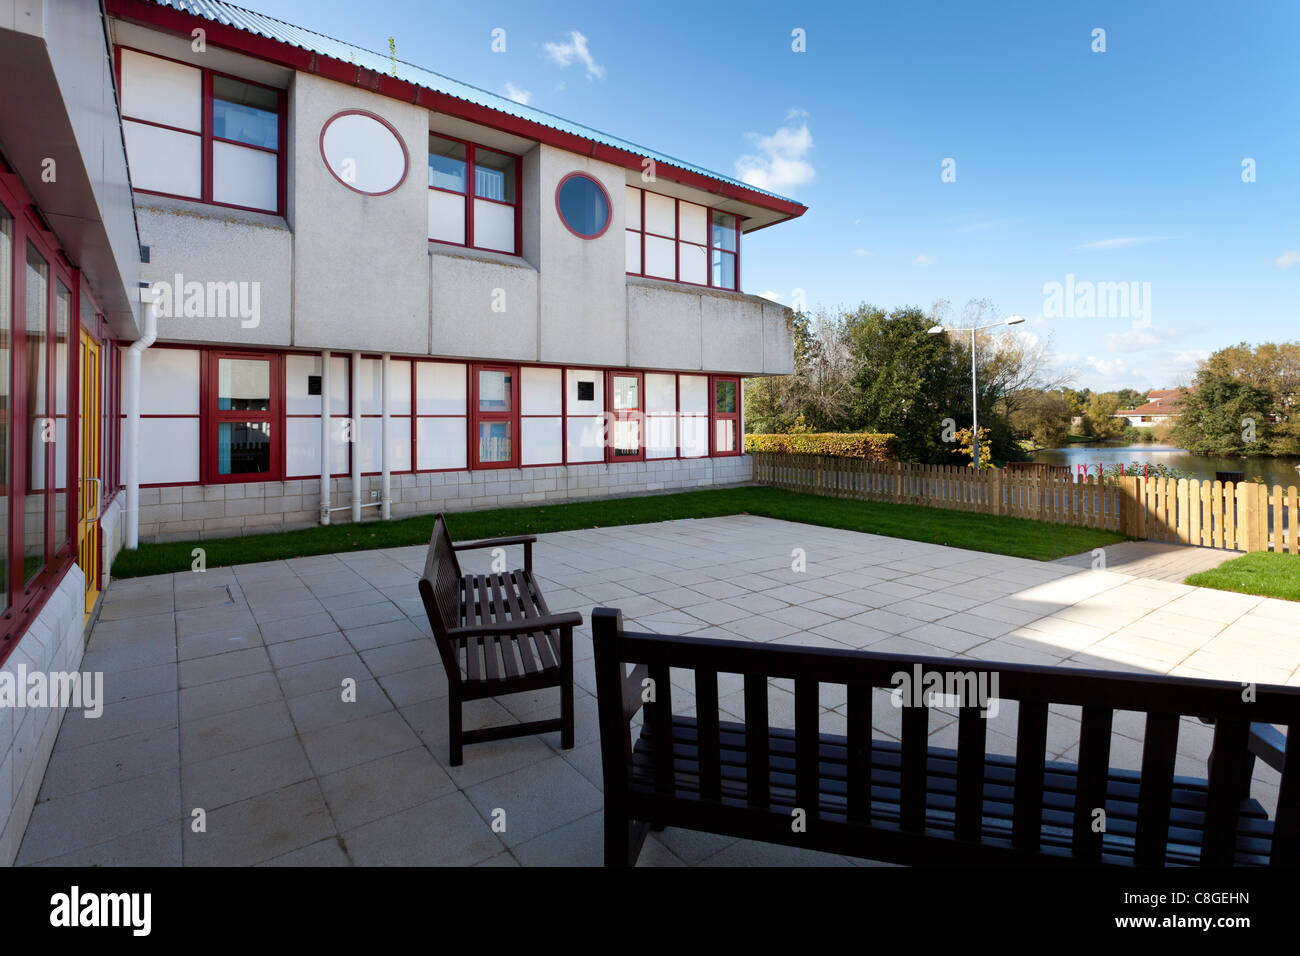 Patio area for the stroke unit at Royal Bournemouth Hospital - Stock Image